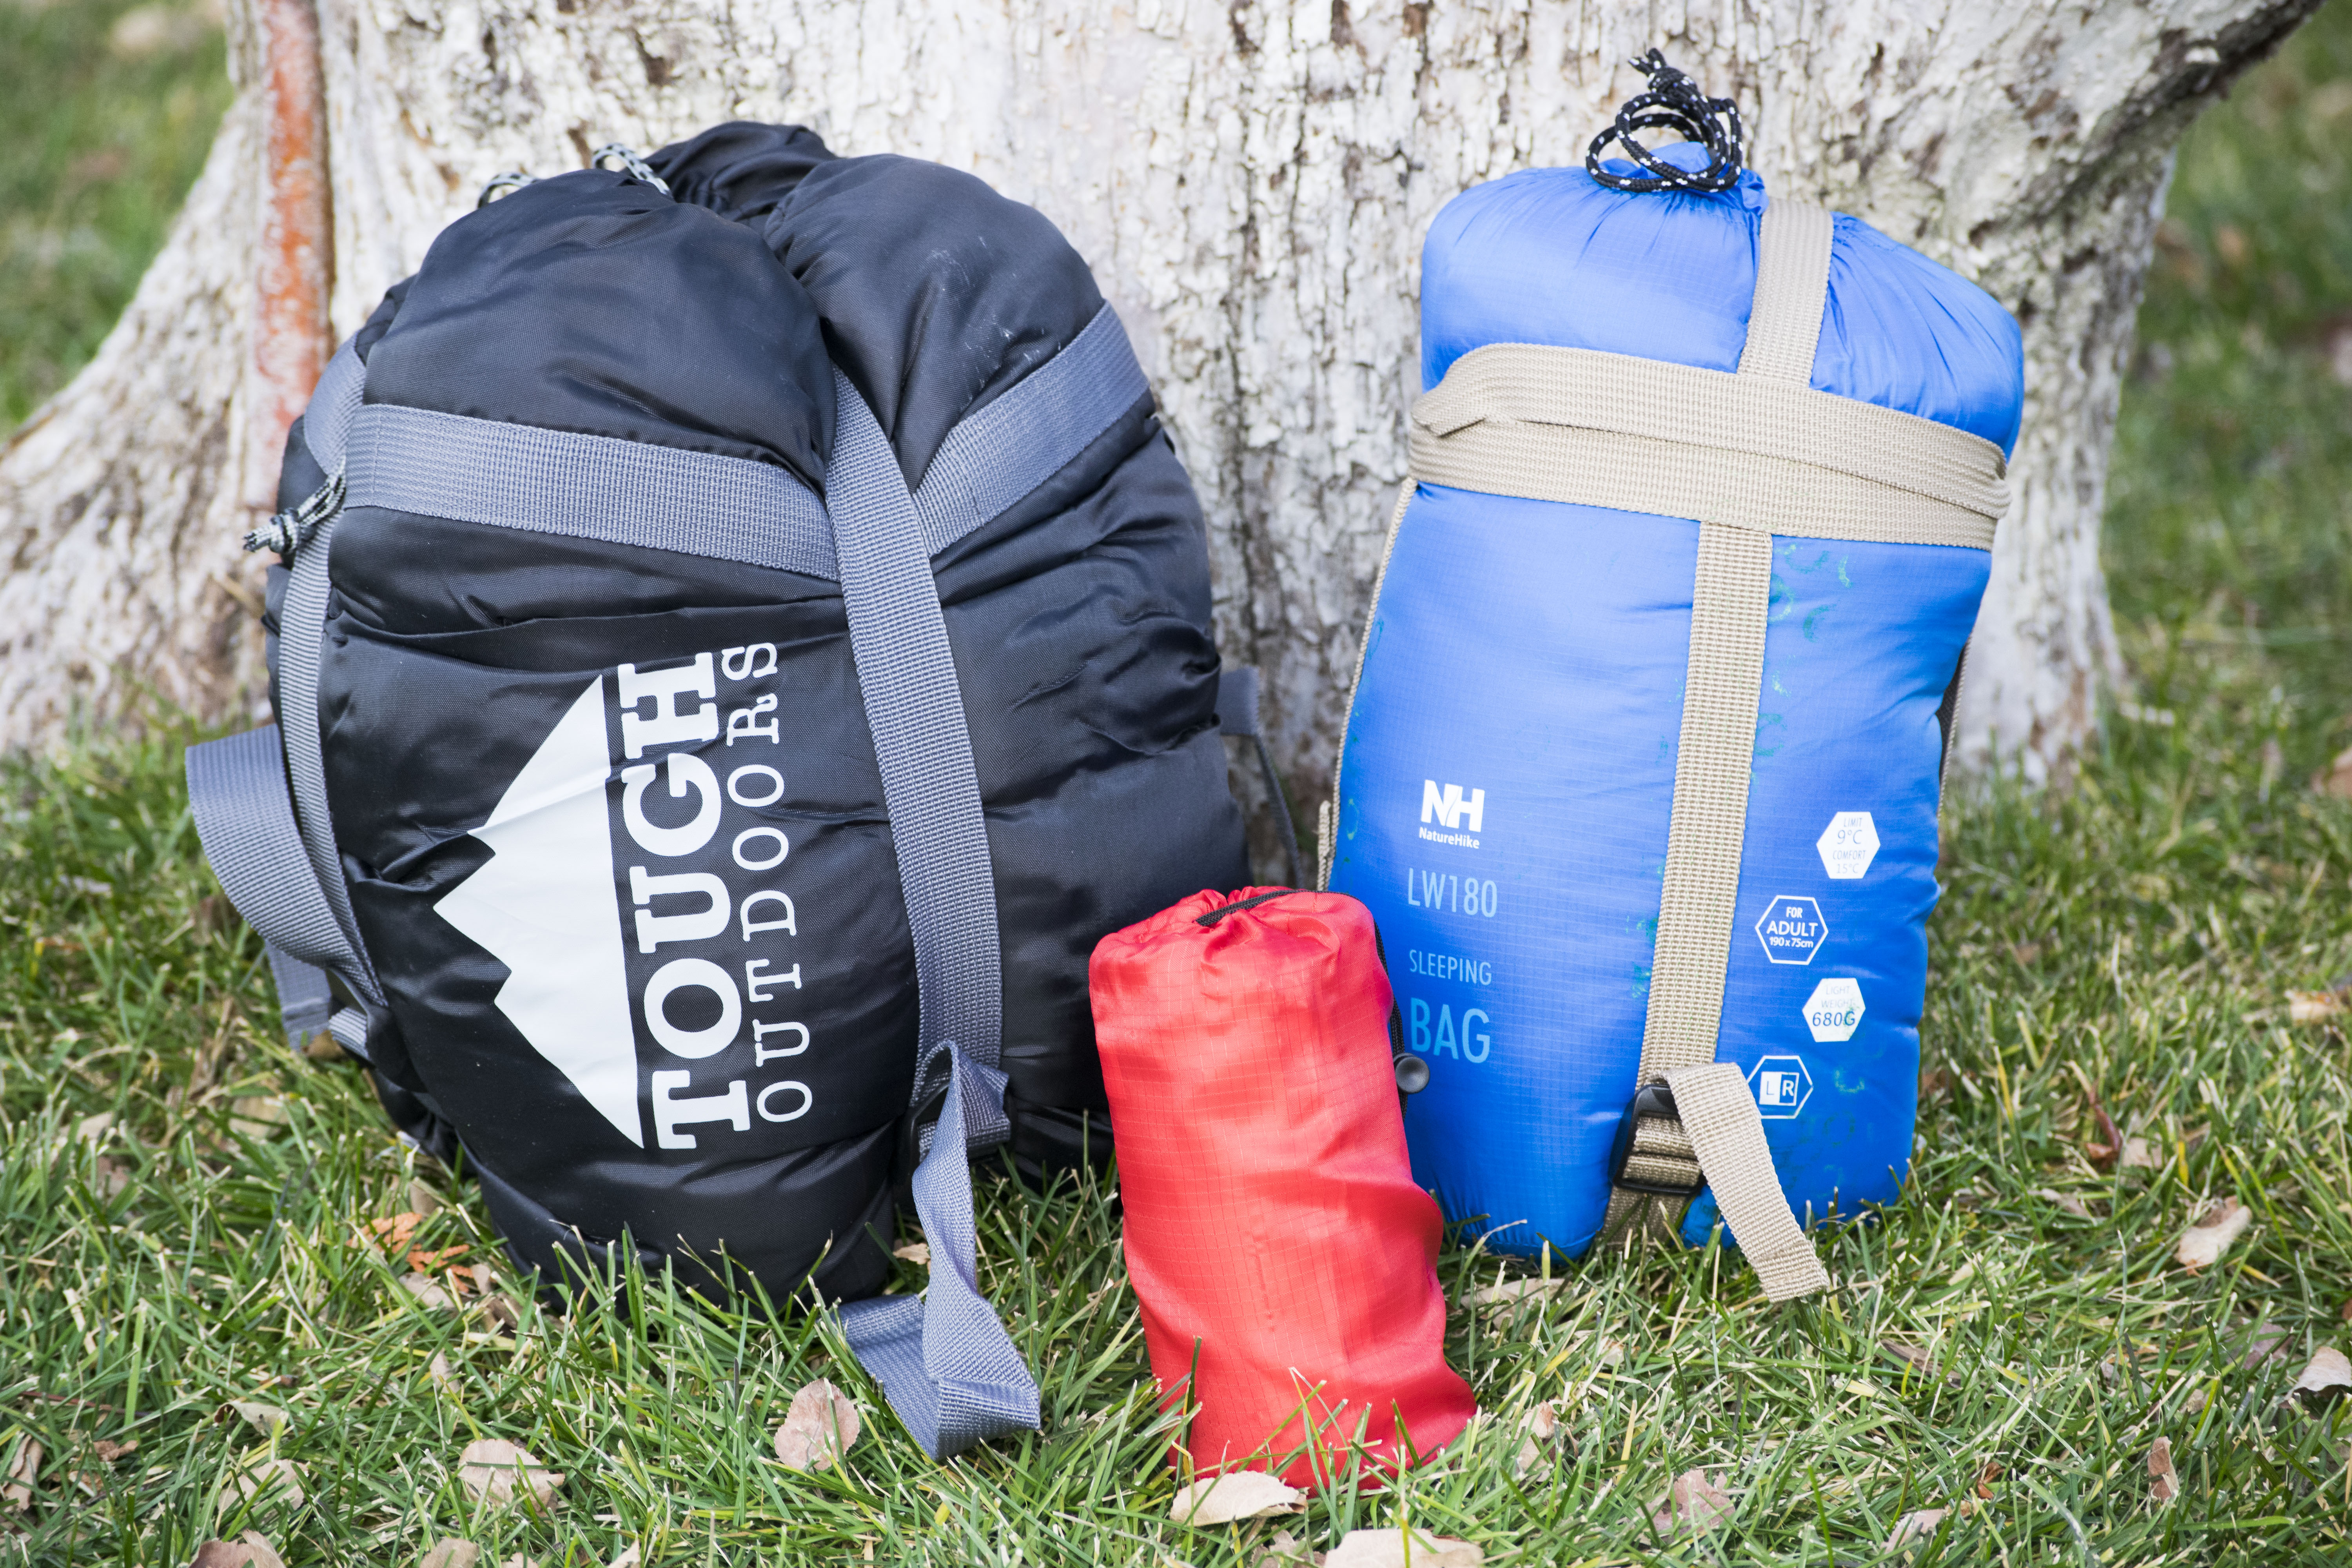 How to Pack a Sleeping Bag into a Backpack